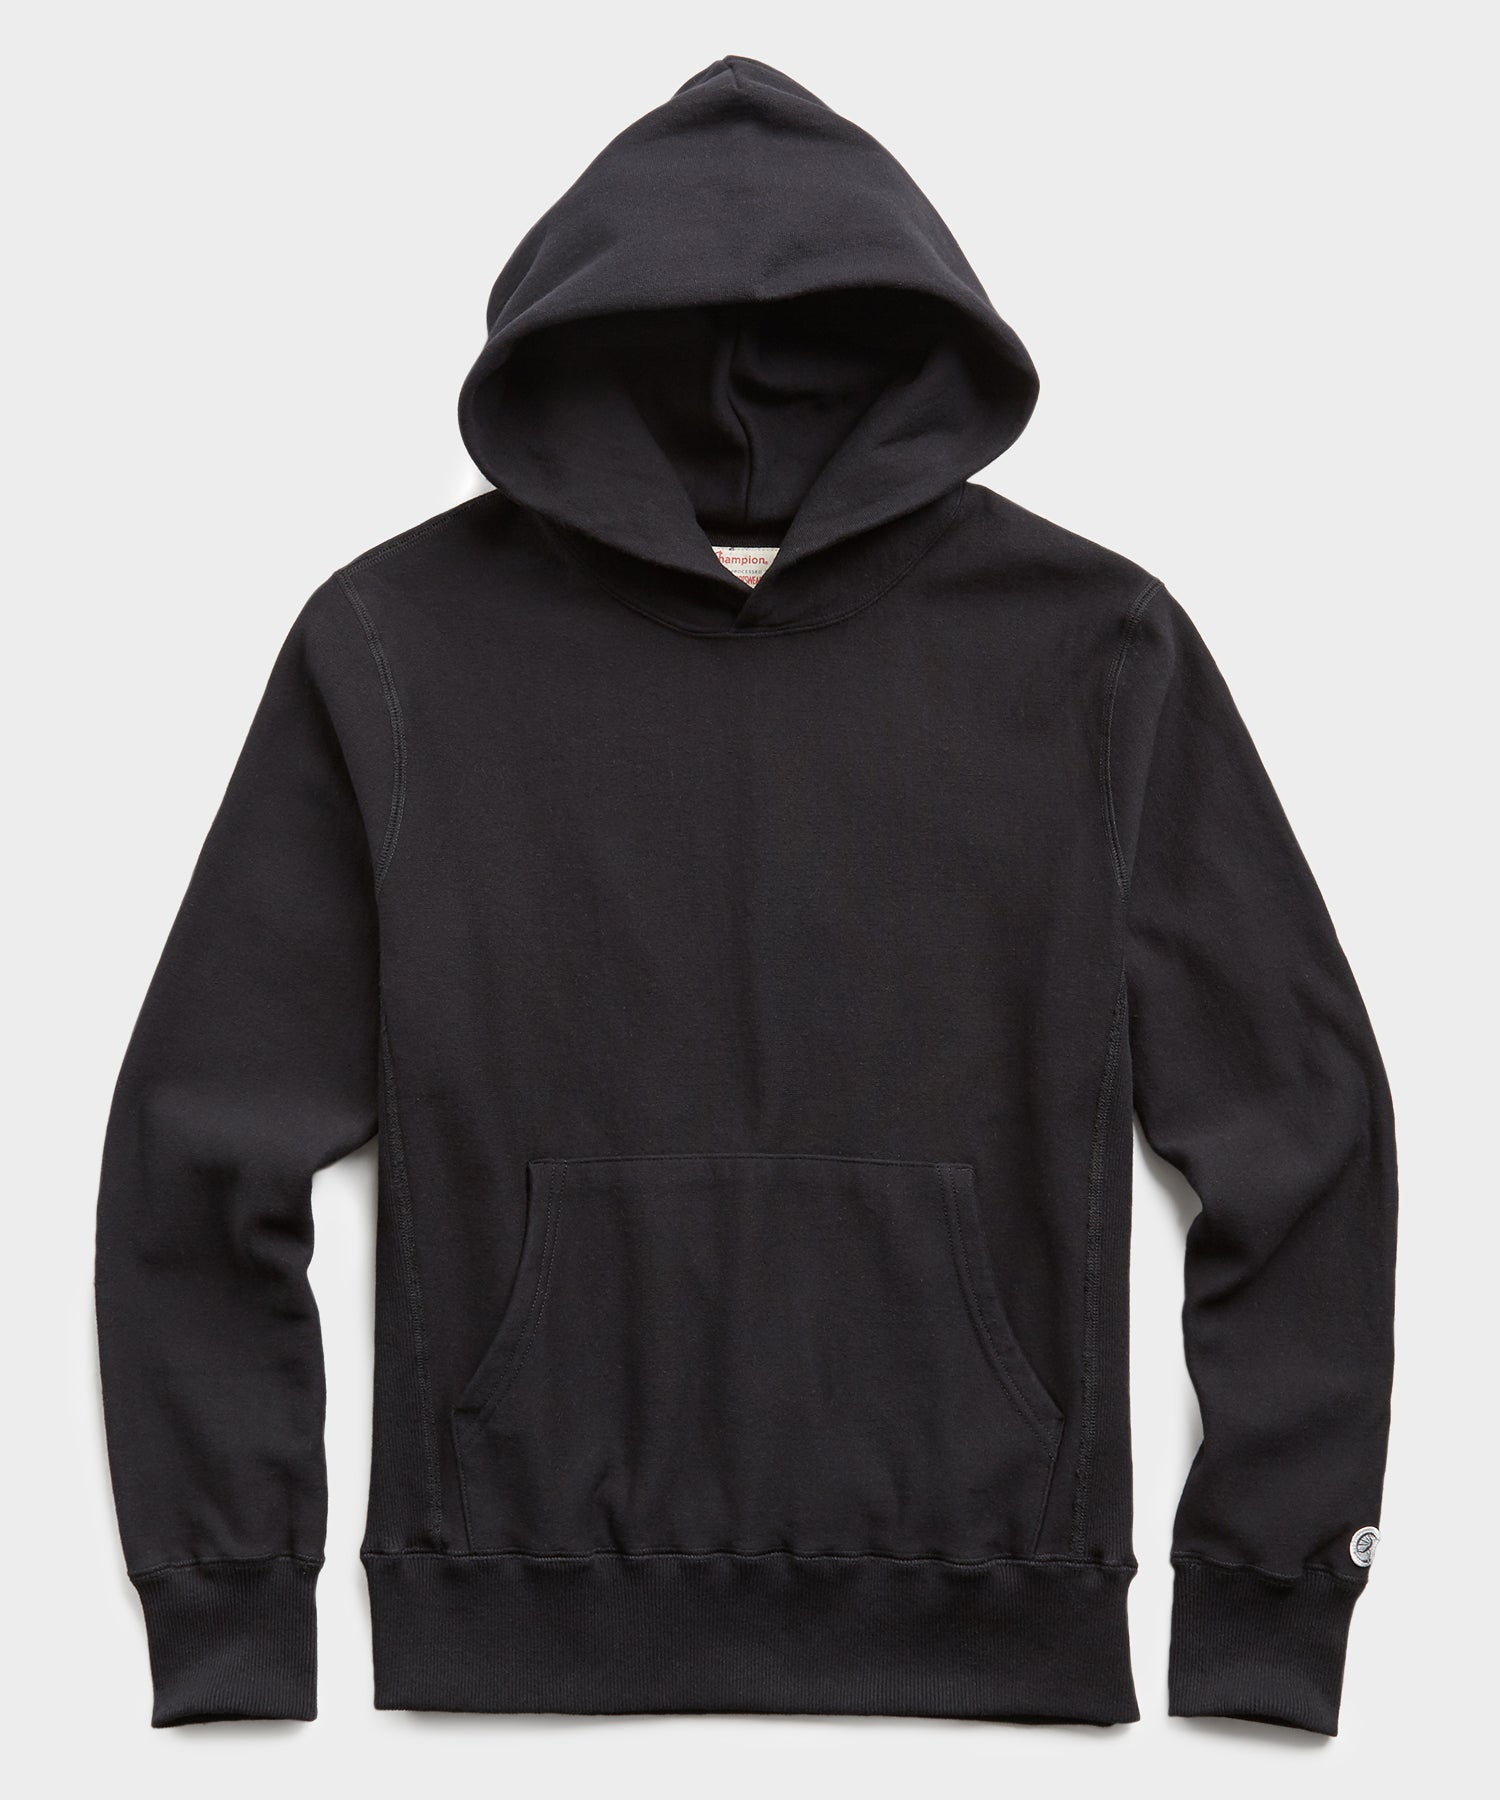 Lightweight Popover Hoodie Sweatshirt in Black